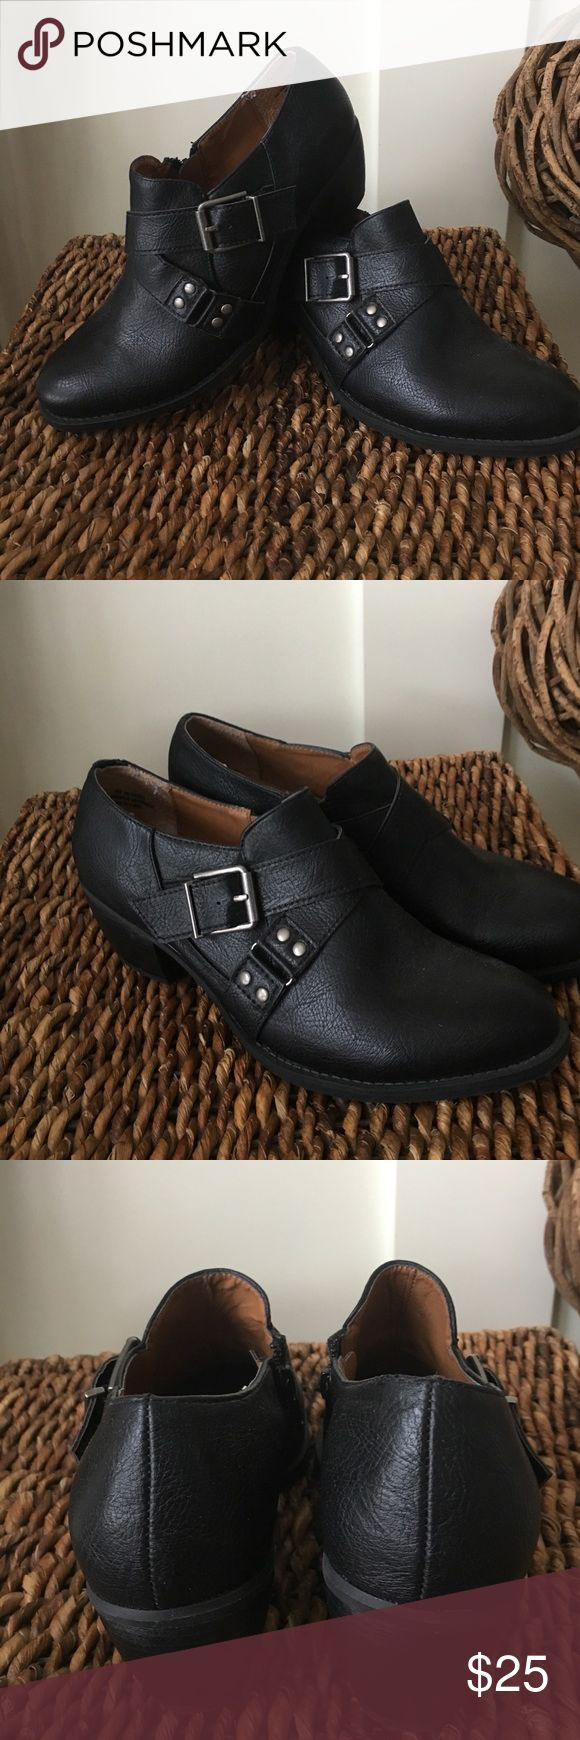 Relativity black slip on boot like new These cute black ankle boots are like new accented by crisscross band with Silvertone buckle approximate 2 inch heels for comfort Relativity Shoes Ankle Boots & Booties